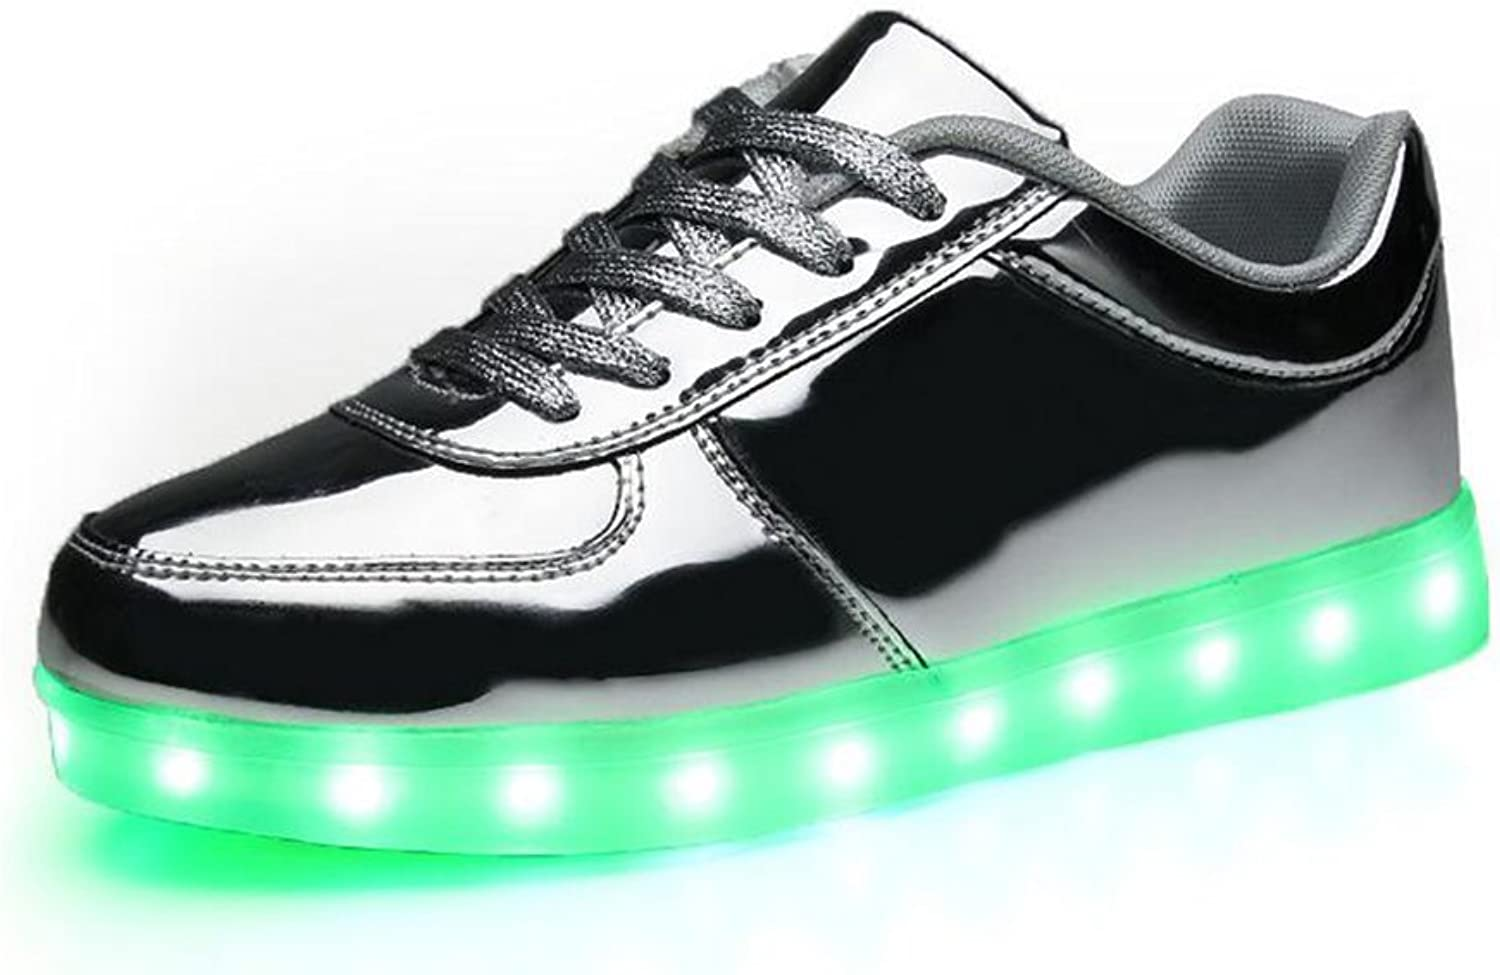 HUAN LED shoes LED Couples shoes 7 colors Unisex Men Women USB Chargable for Thanksgiving Day Valentine's Day Party Christmas Hallowen Gift